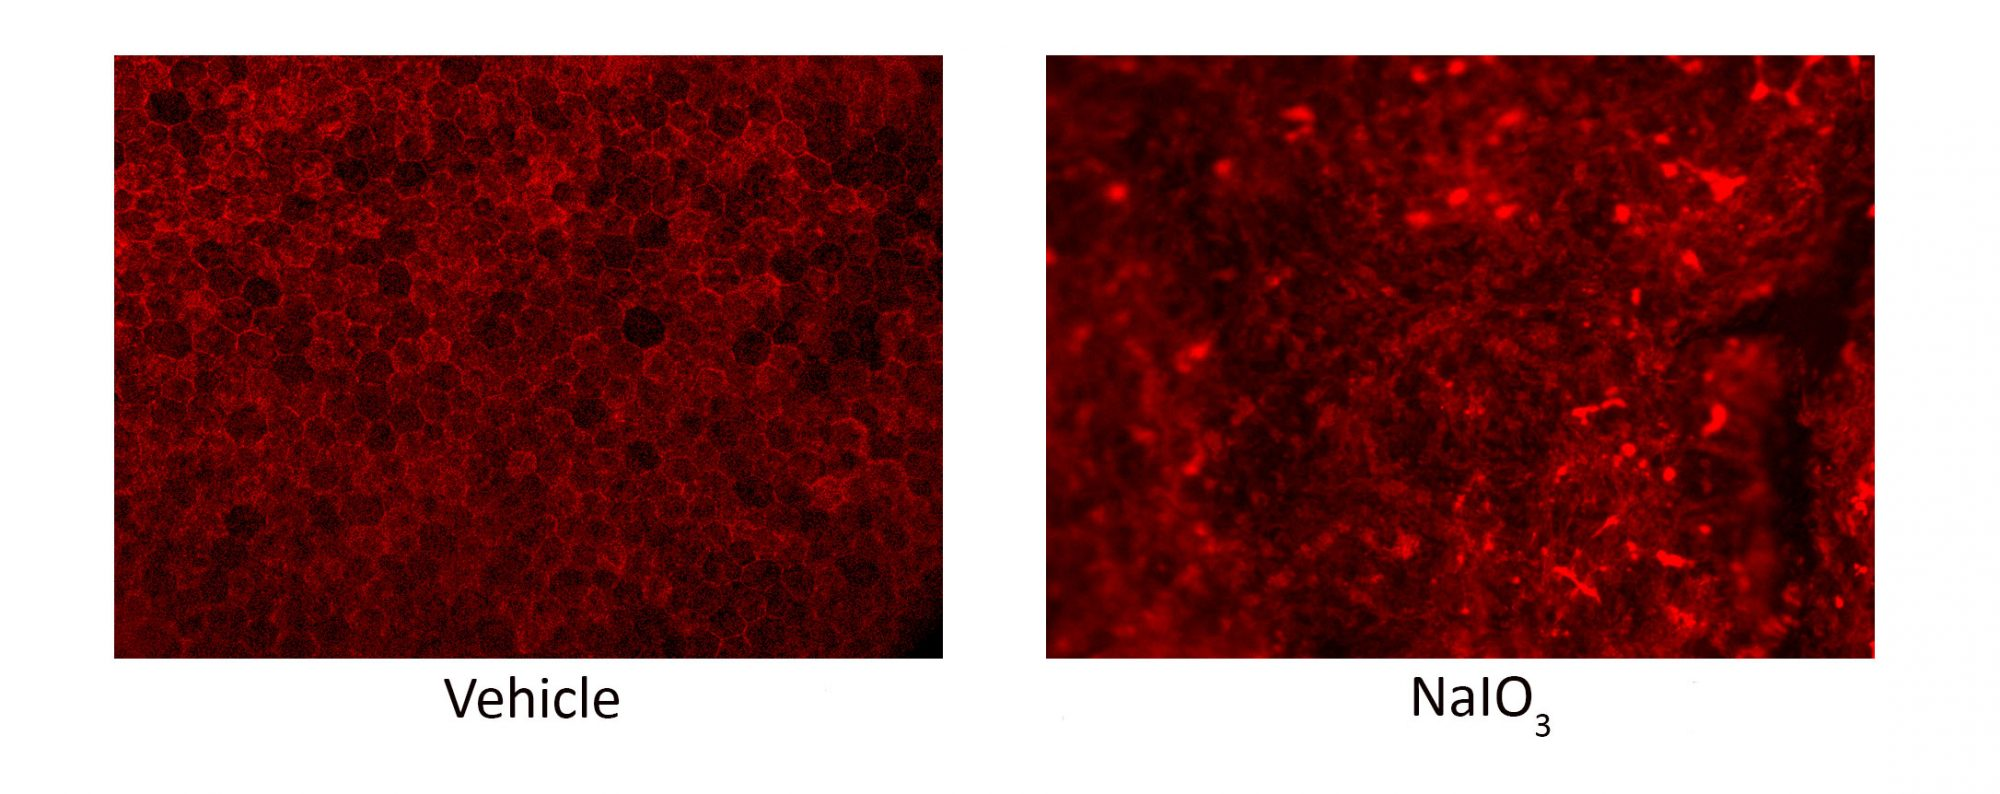 RPE phalloidin staining in NaIO3 model